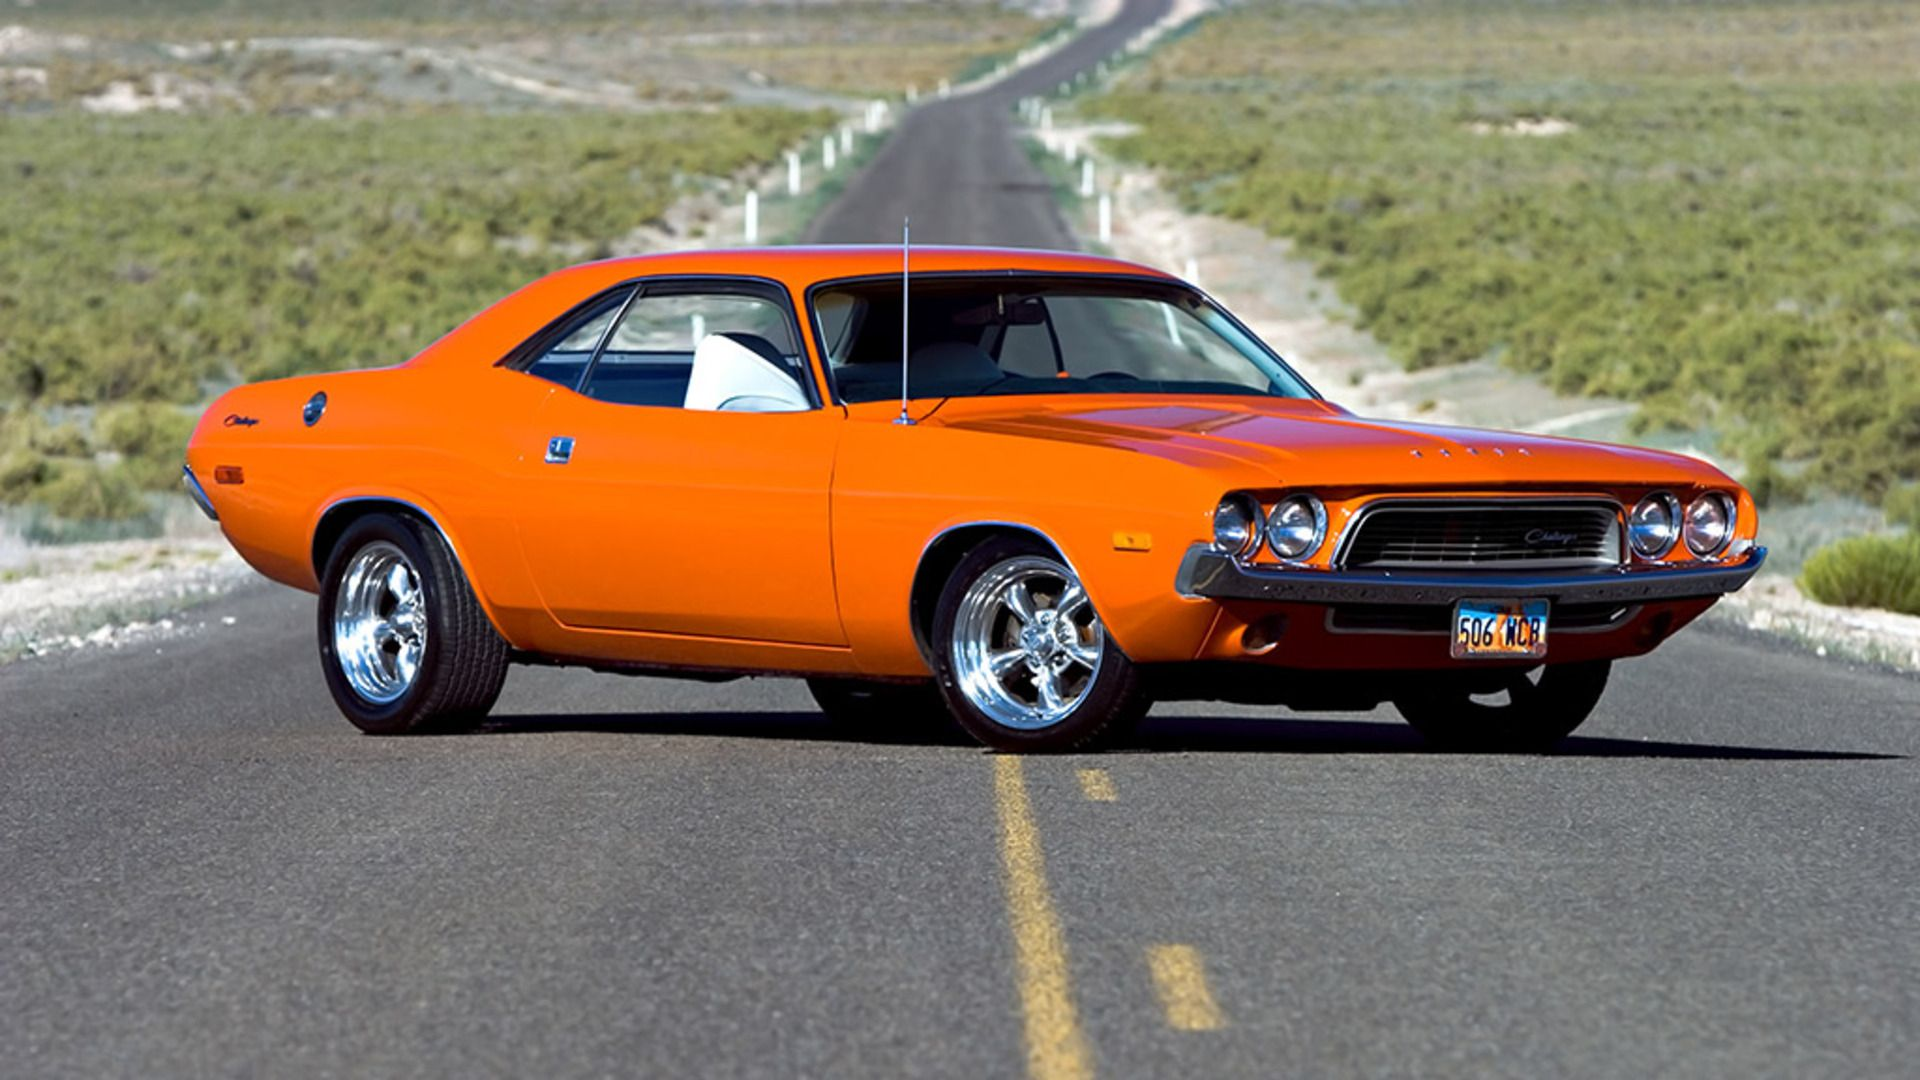 Megapost] Muscle Cars - Fondos HD | Dodge challenger, Muscles and Cars